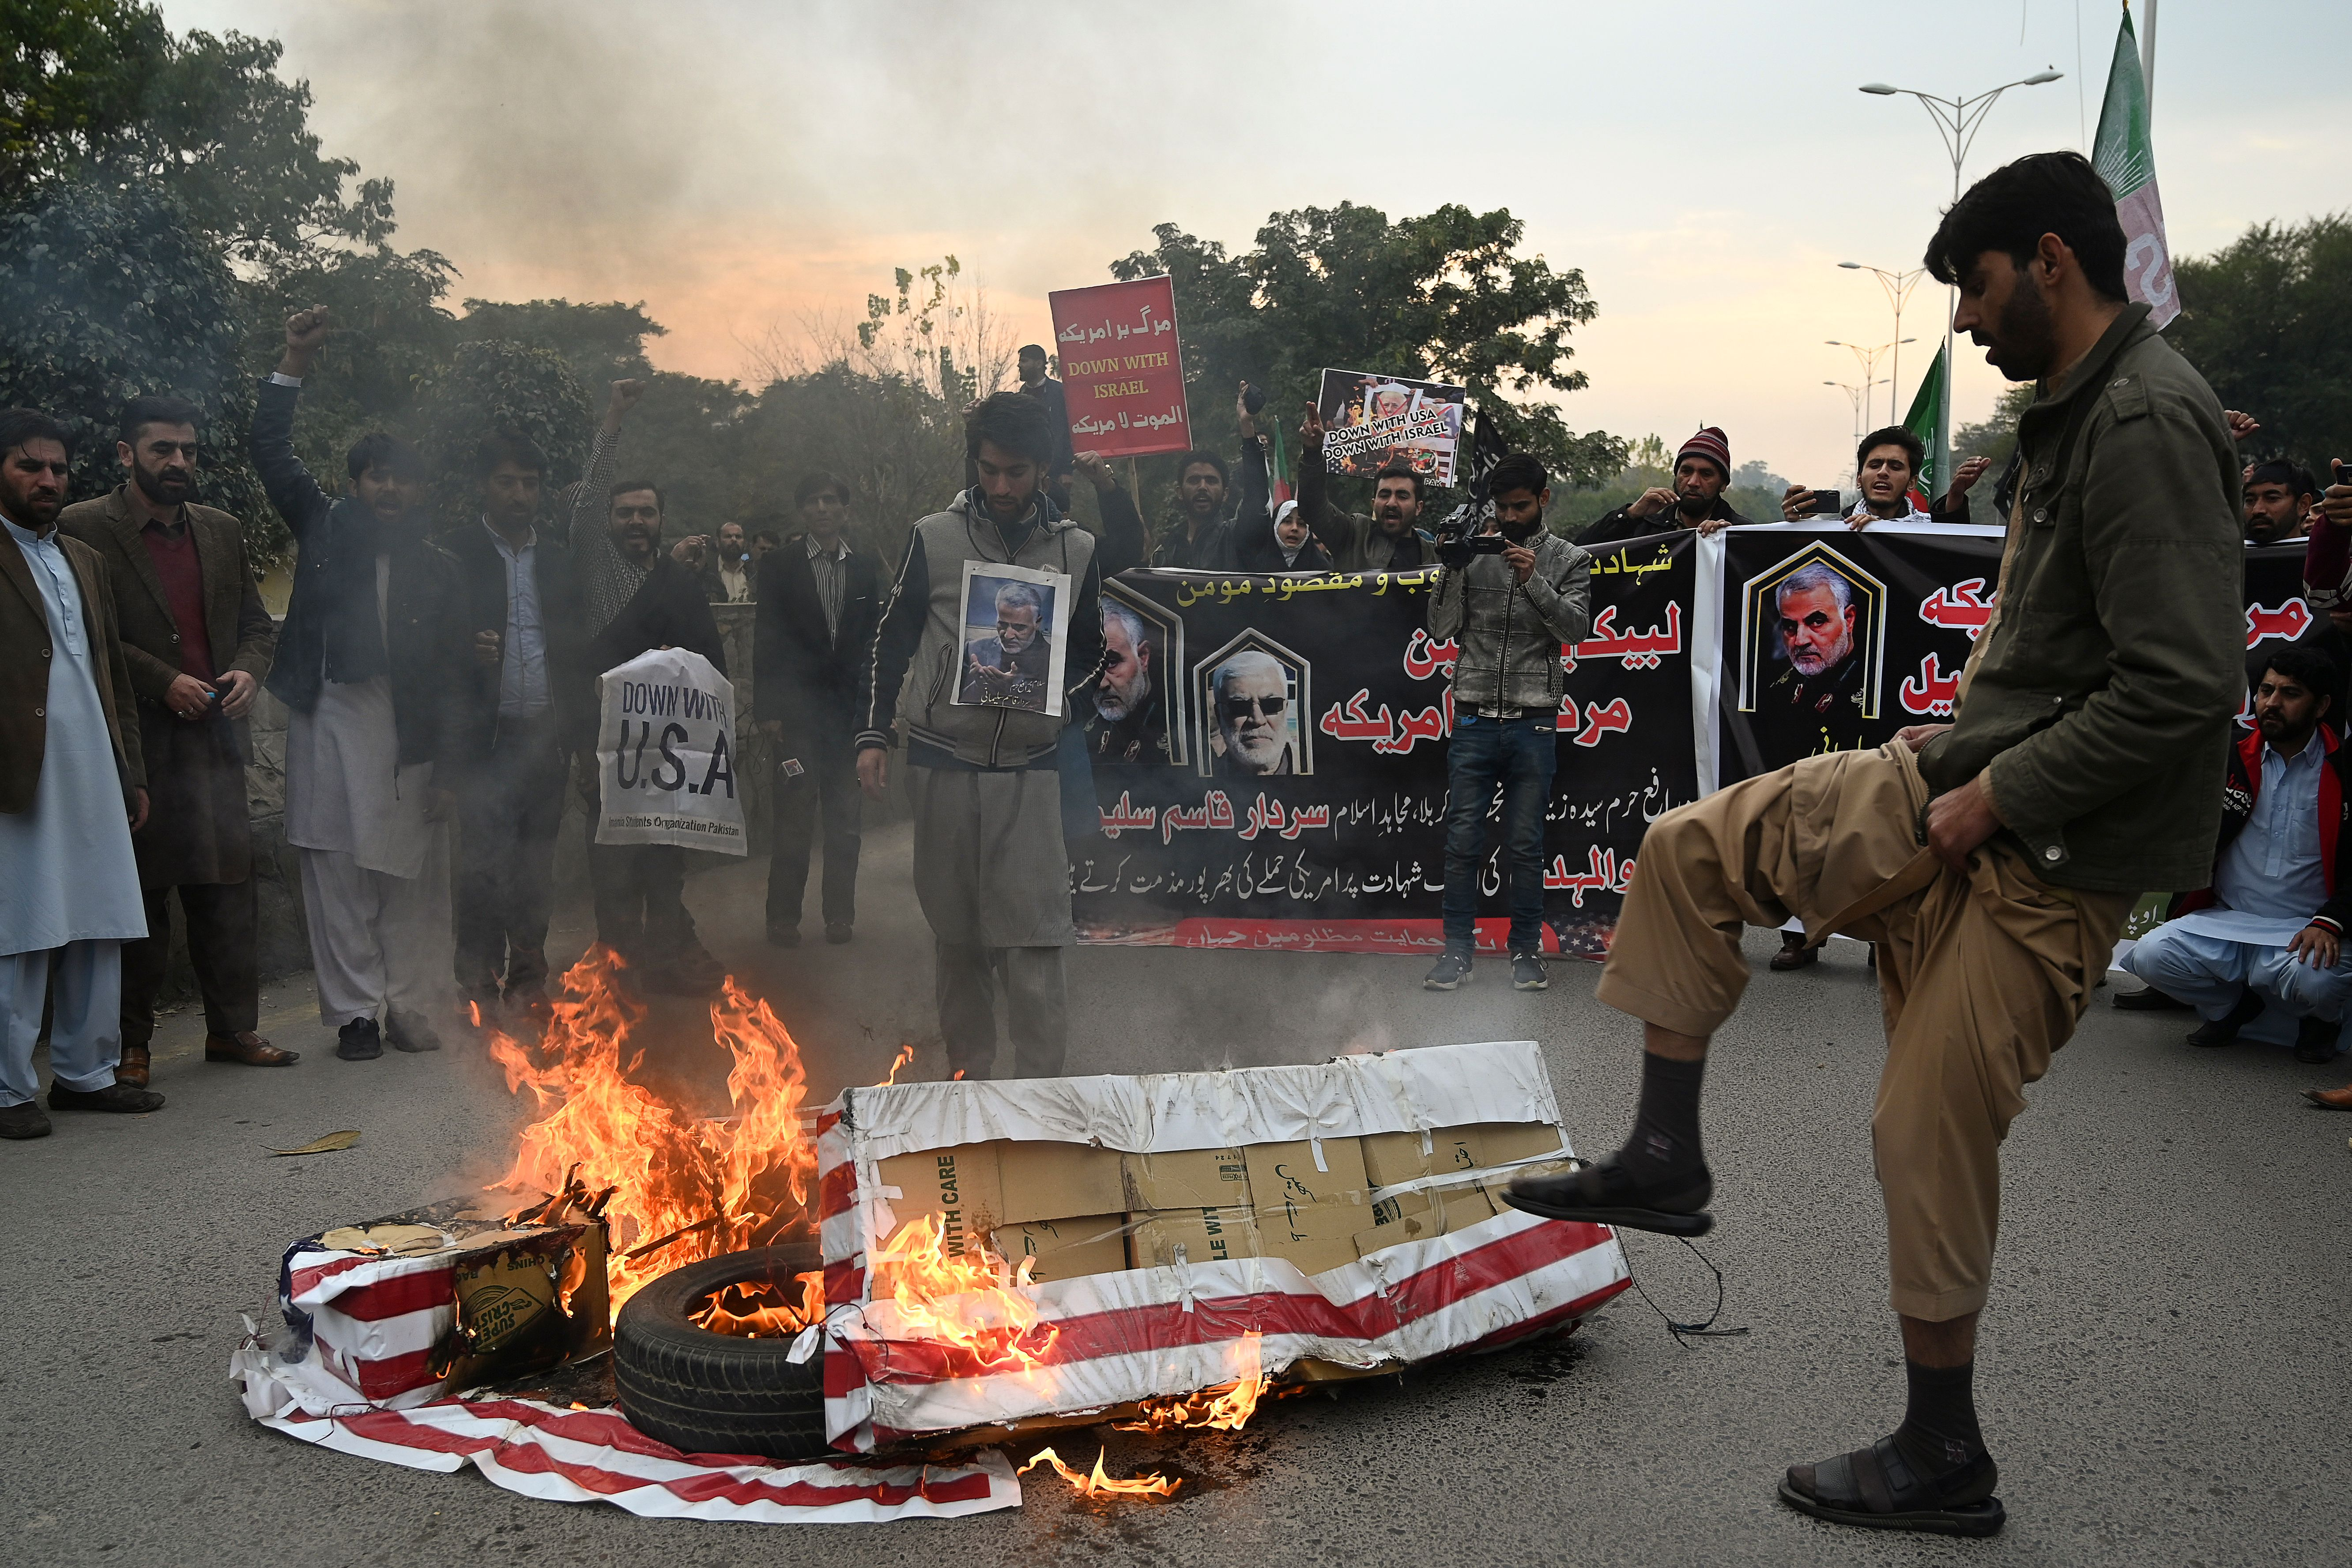 Protesters burn US flags during a demonstration in Islamabad, Pakistan, following the airstrike that killed Soleimani on Friday. Credit: Aamir Qureshi/AFP via Getty Images